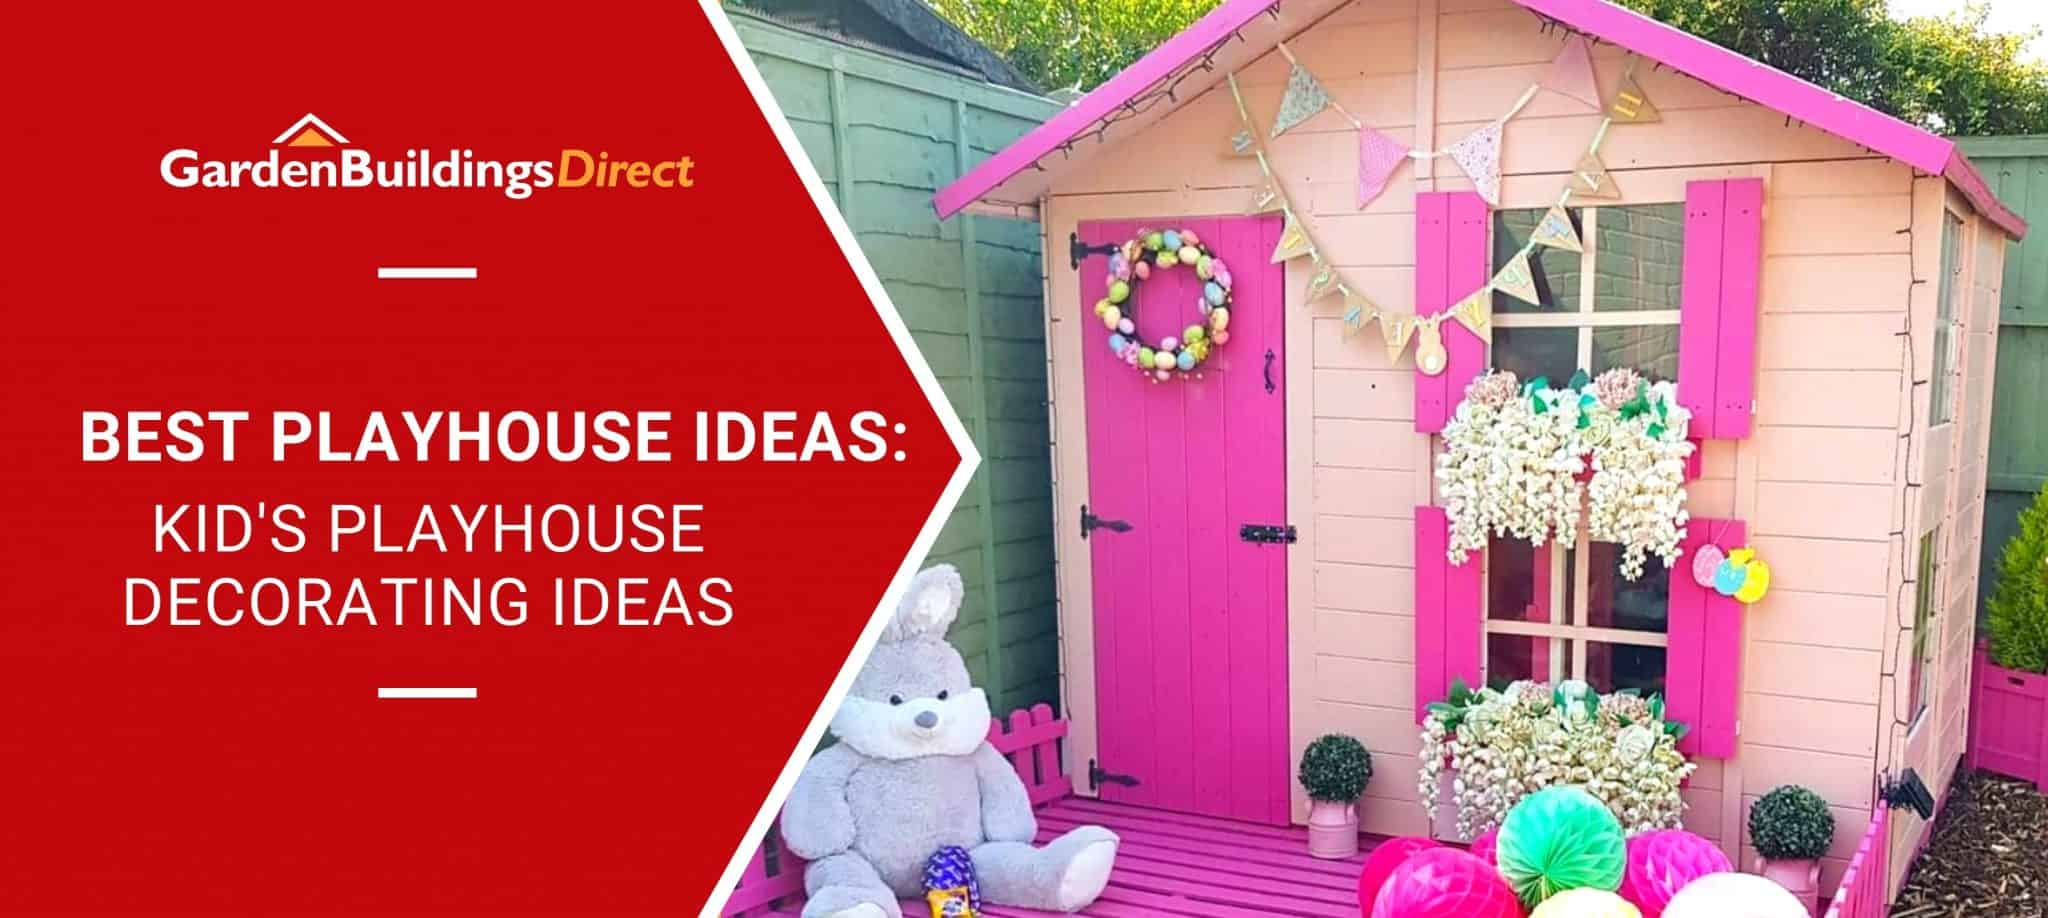 'Best Playhouse Ideas_ Kid's Playhouse Decorating Ideas' with a playhouse painted pink with bunting and teddy bears and garden buildings direct logo on a red arrow banner